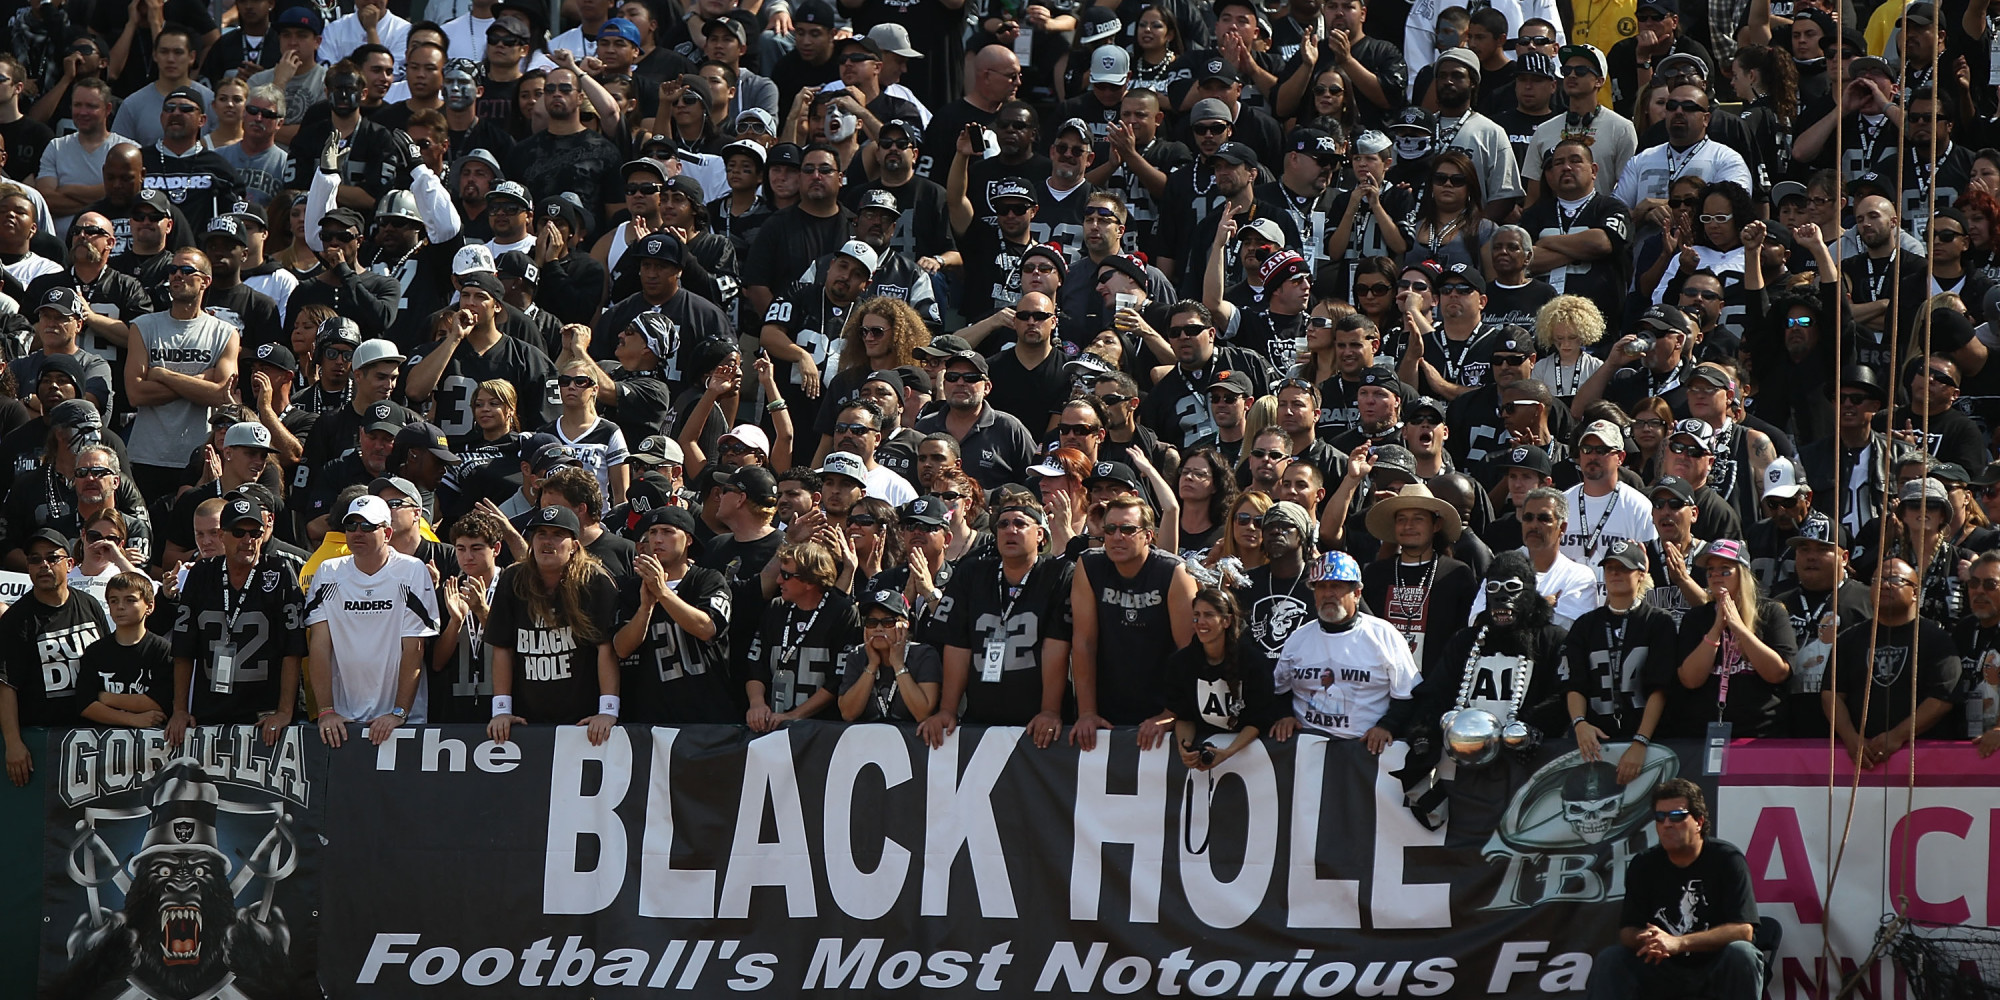 Le Black Hole, célèbre groupe de supporters des Raiders (River News Herald)